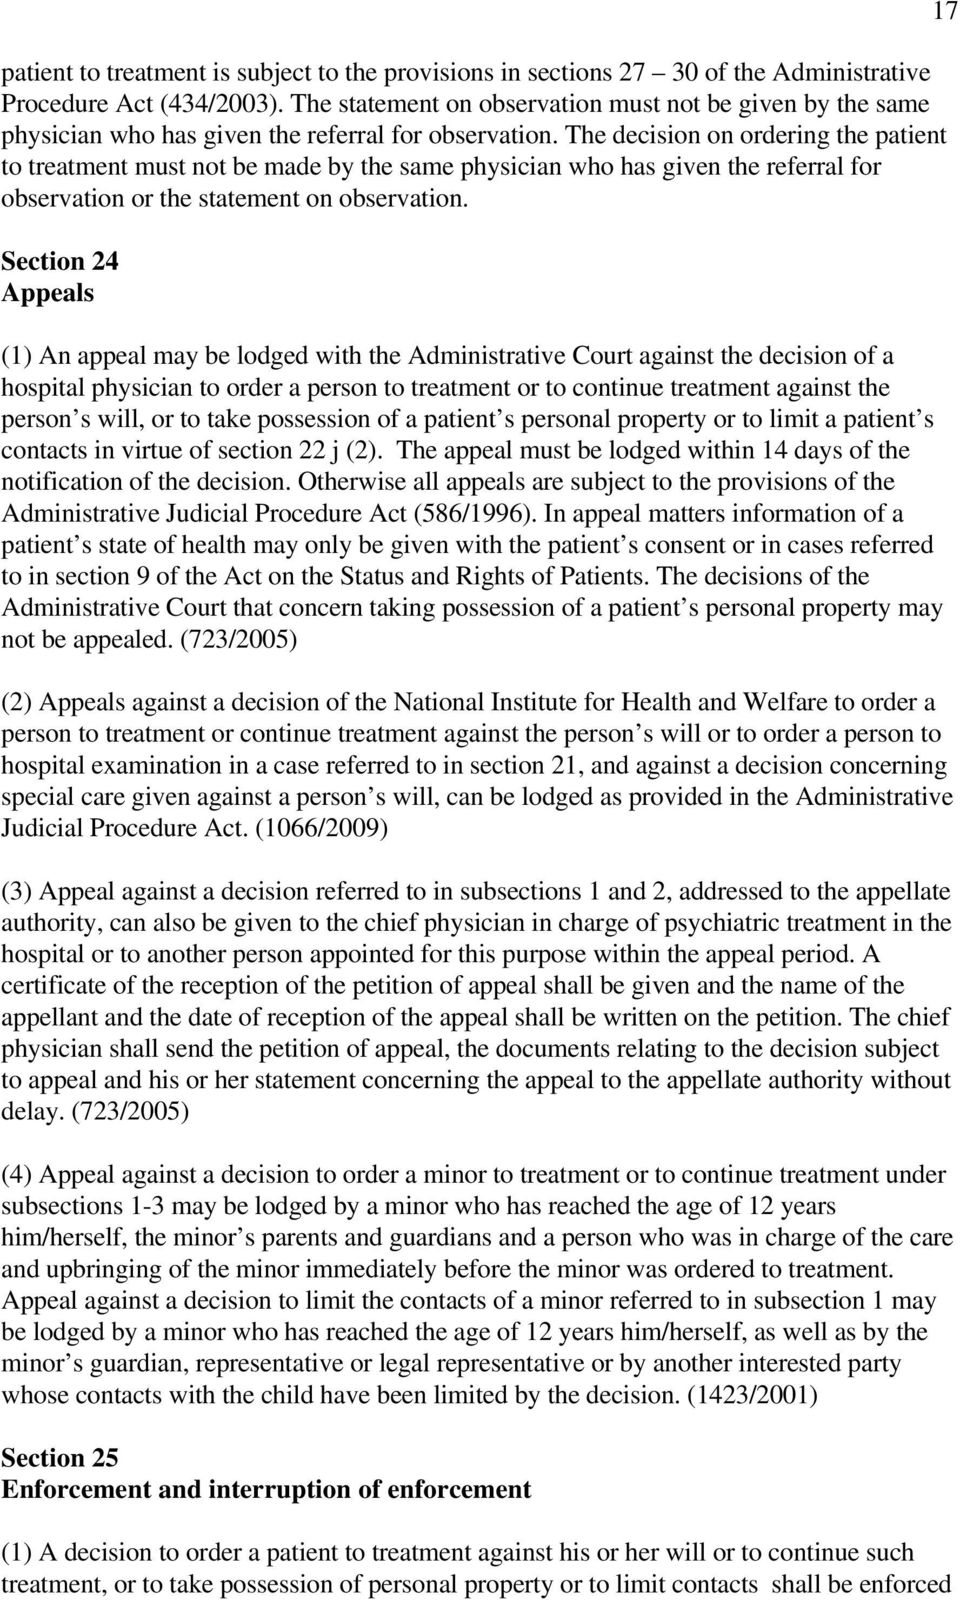 The decision on ordering the patient to treatment must not be made by the same physician who has given the referral for observation or the statement on observation.